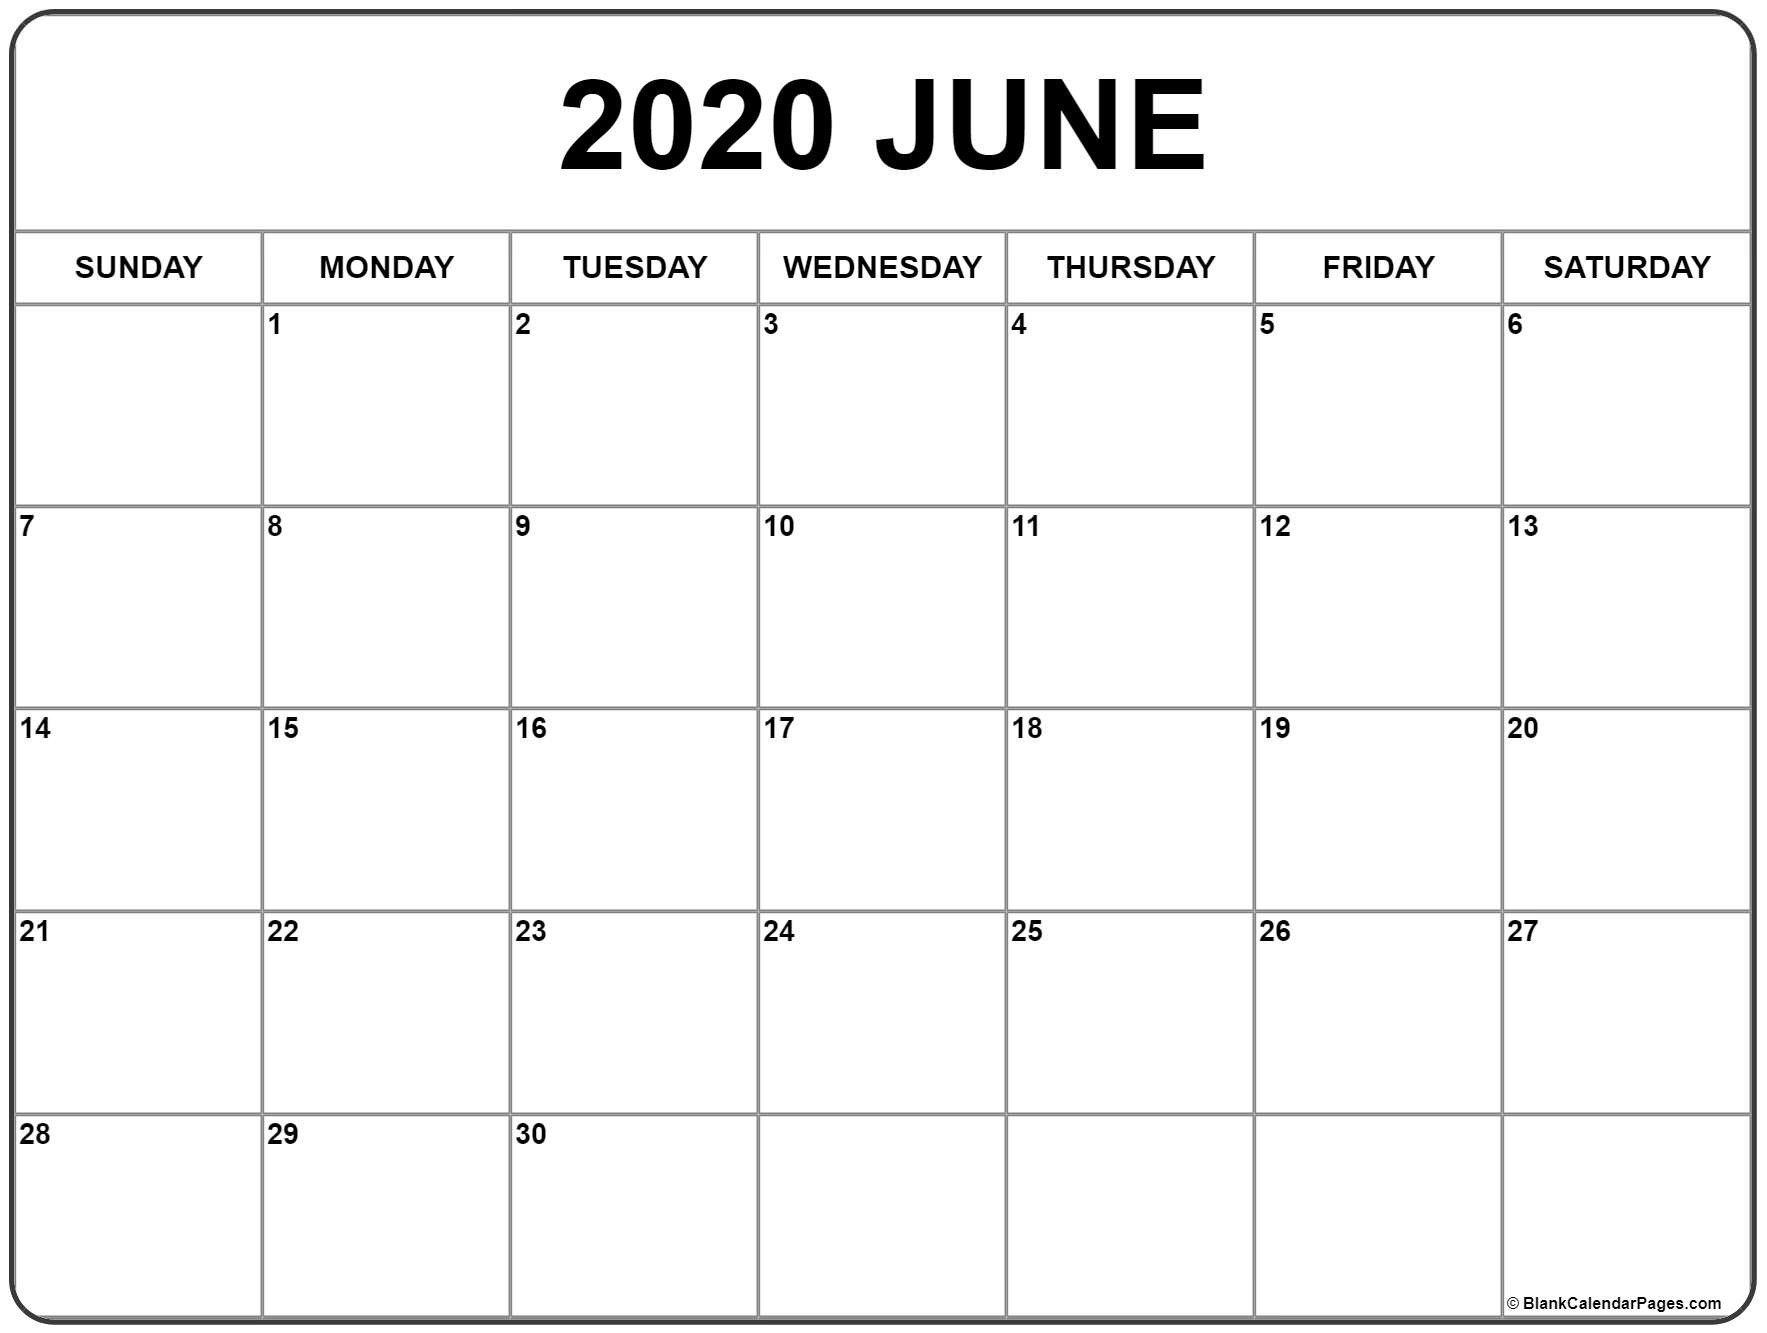 June 2020 Calendar | Free Printable Monthly Calendars  Blank June Calendar 2020